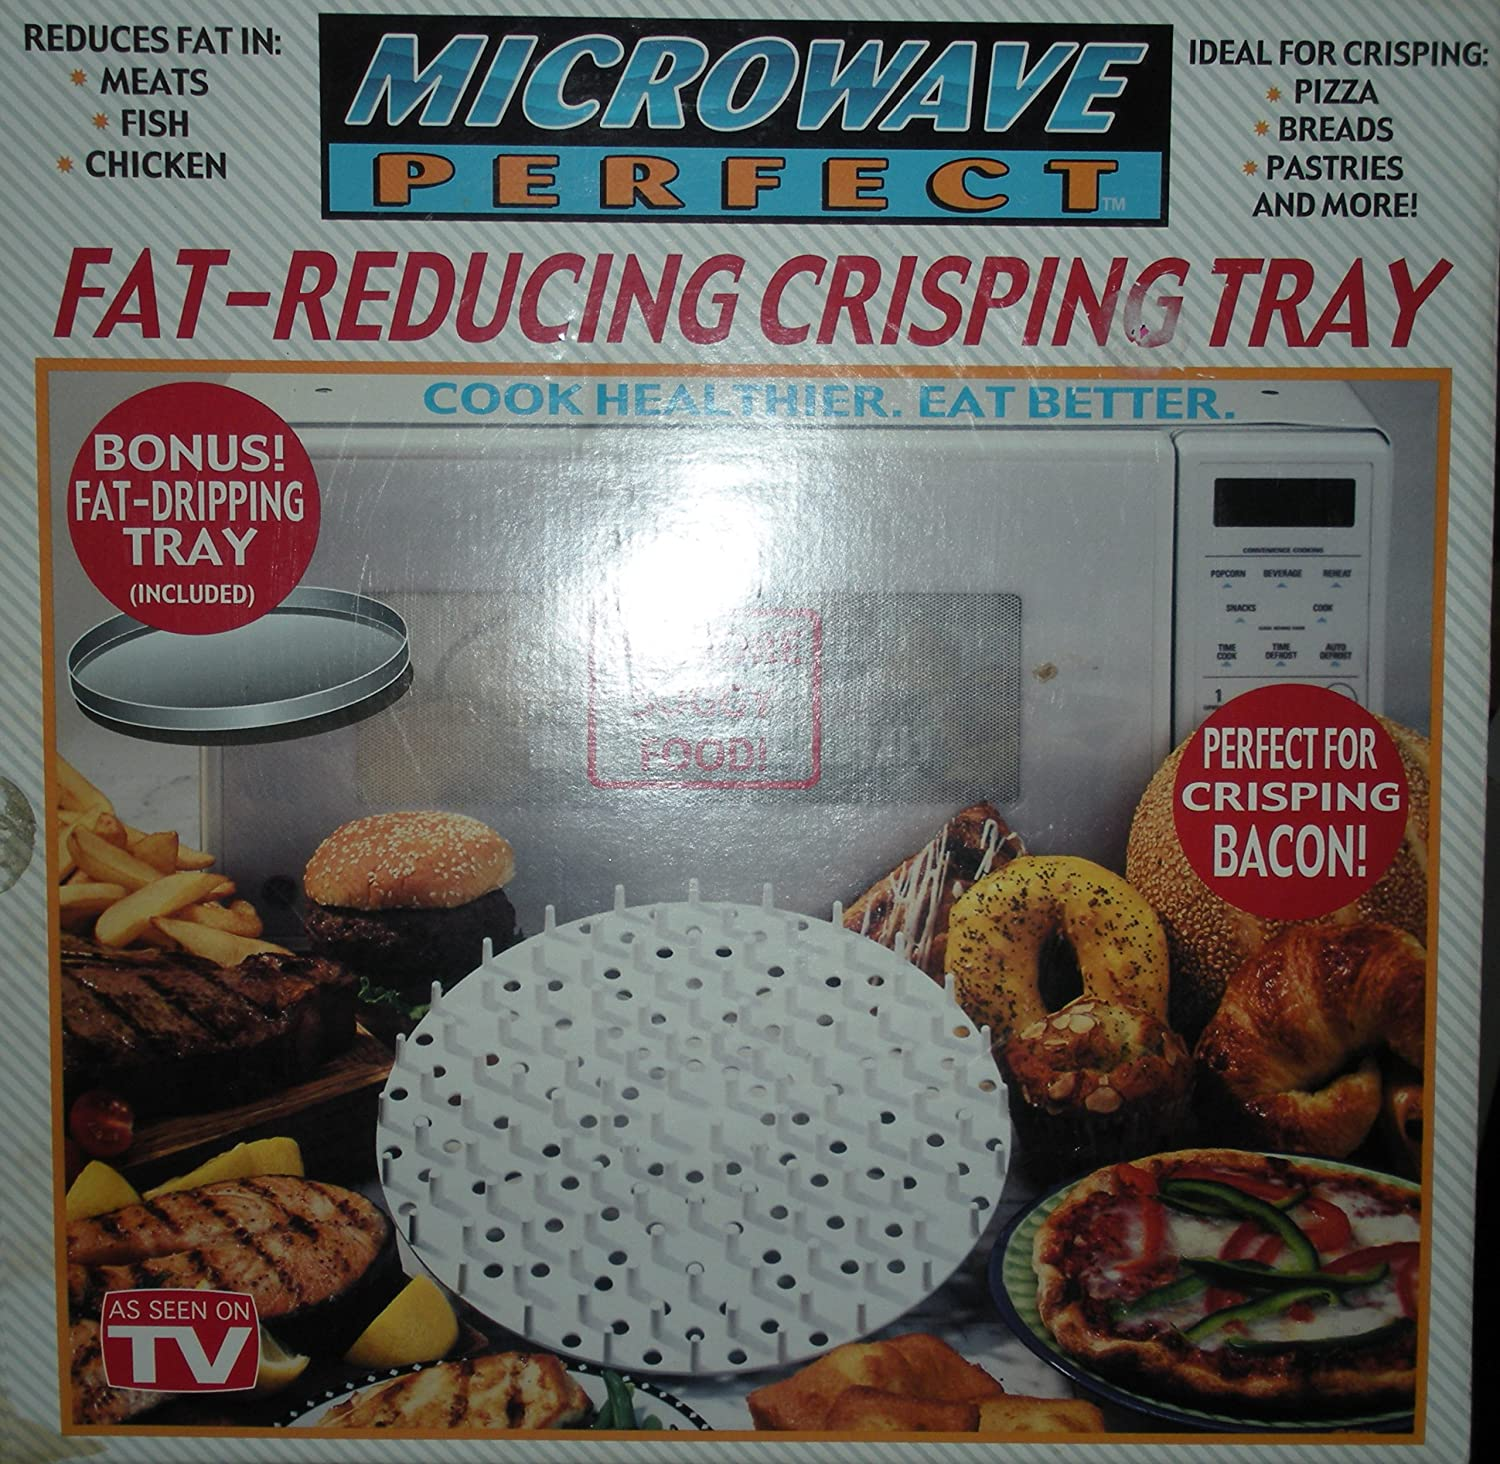 Microwave Perfect FAT-REDUCING CRISPING TRAY